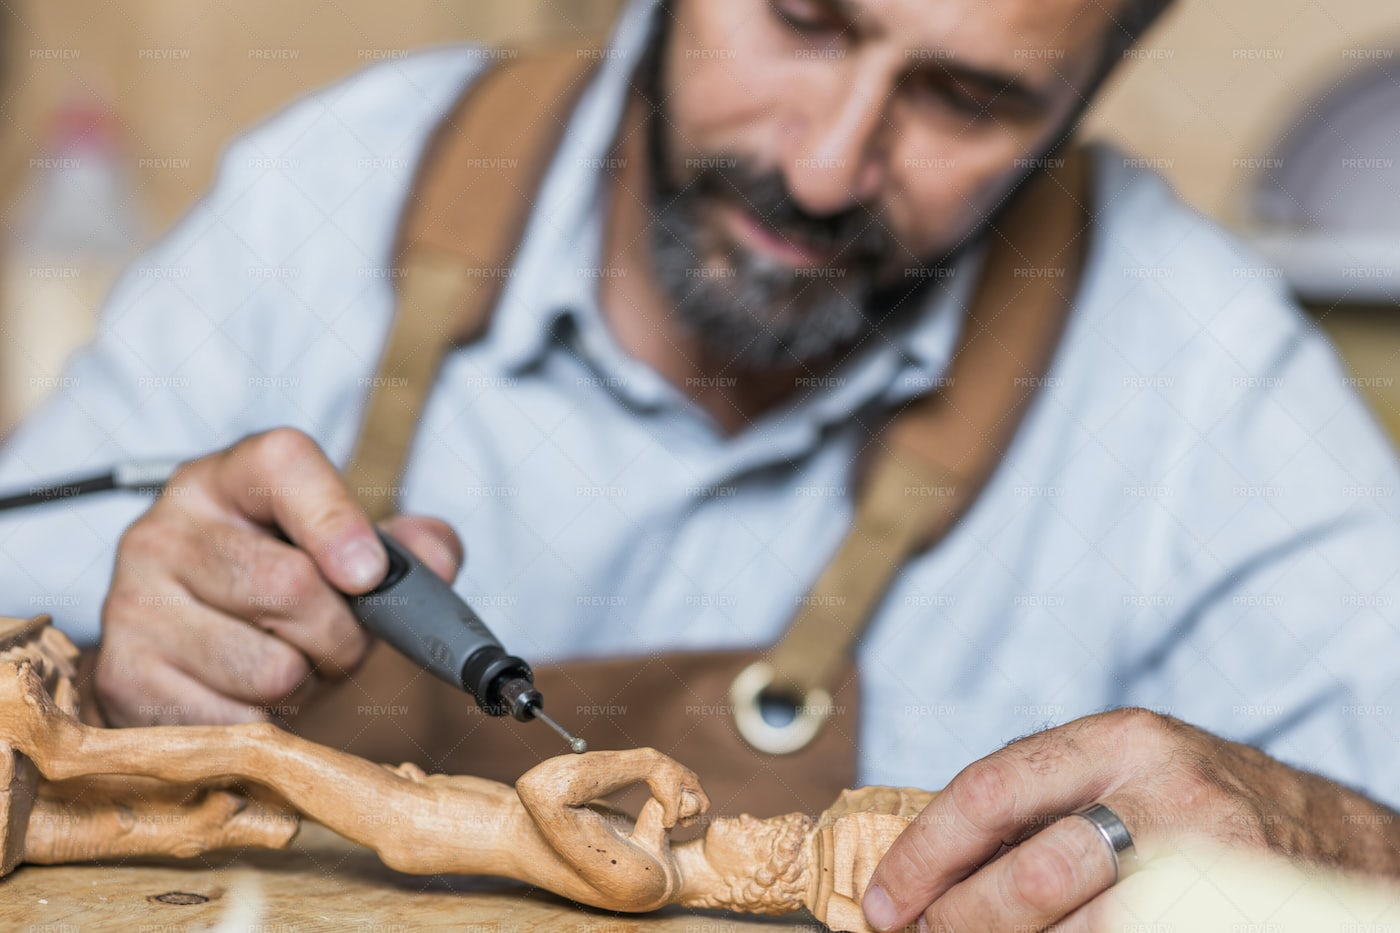 Sculptor Working With Drill: Stock Photos